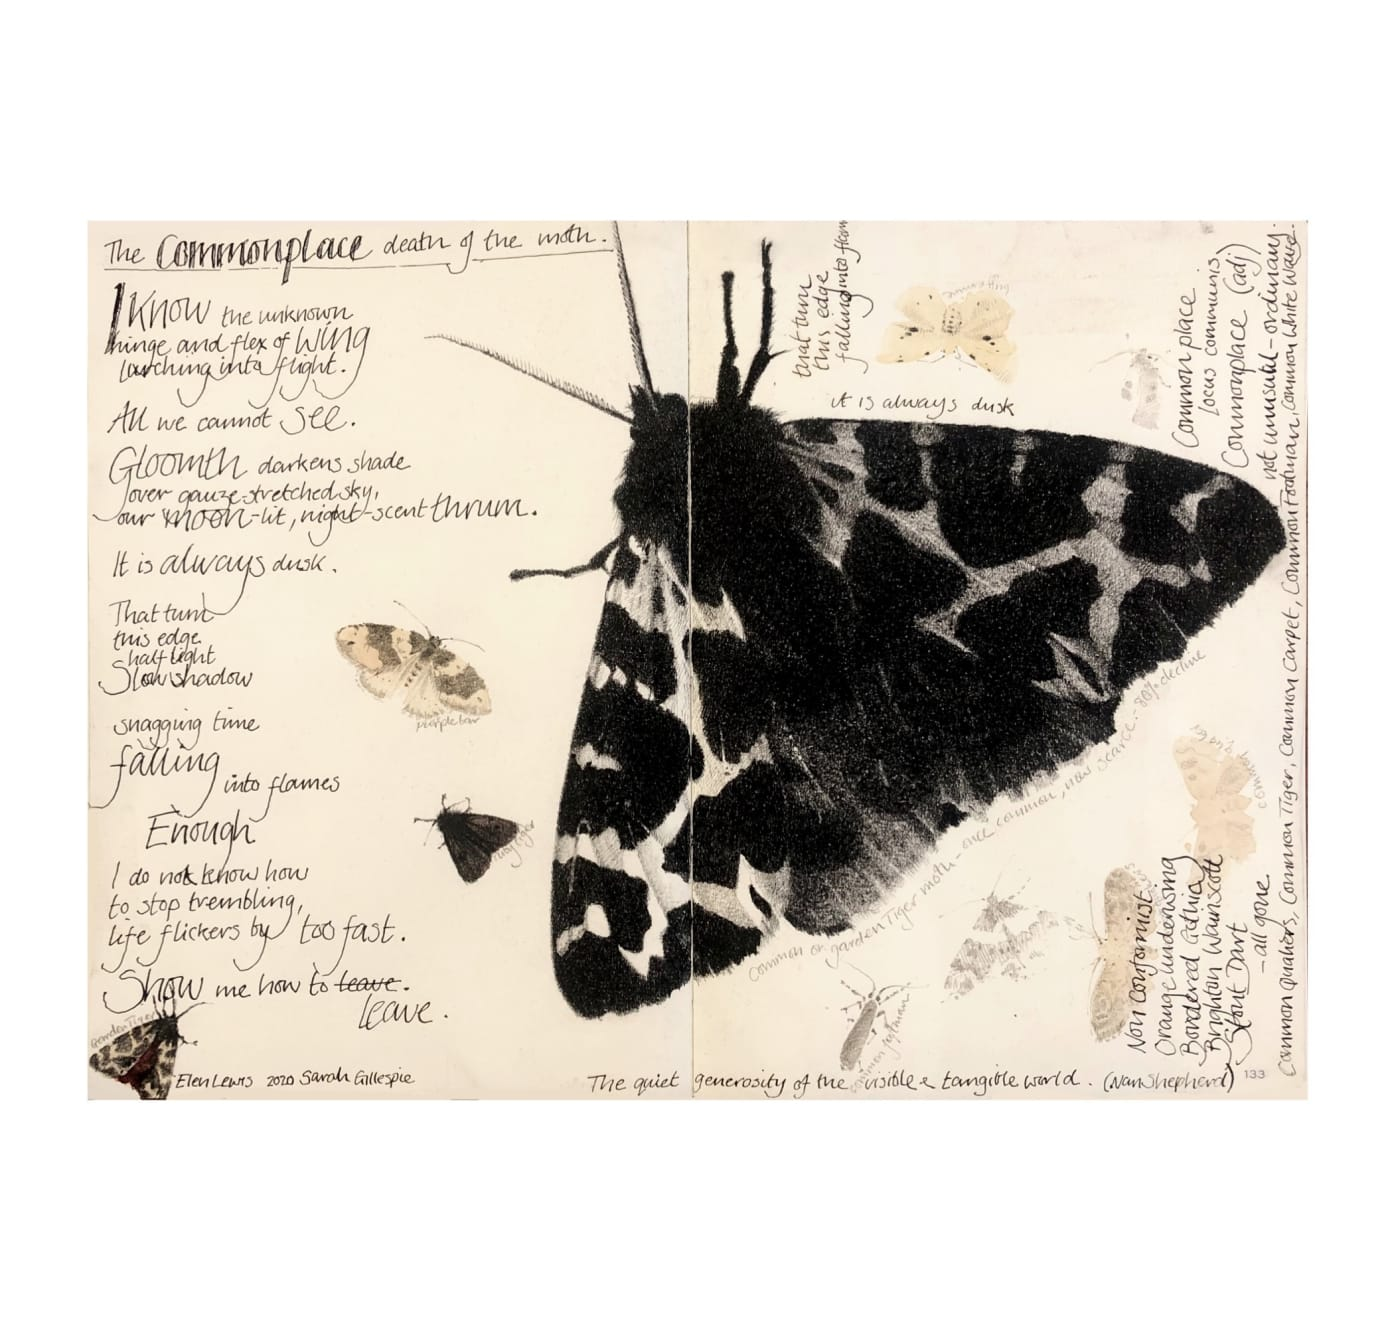 Sarah Gillespie, The Commonplace Death of the Moth, 2020